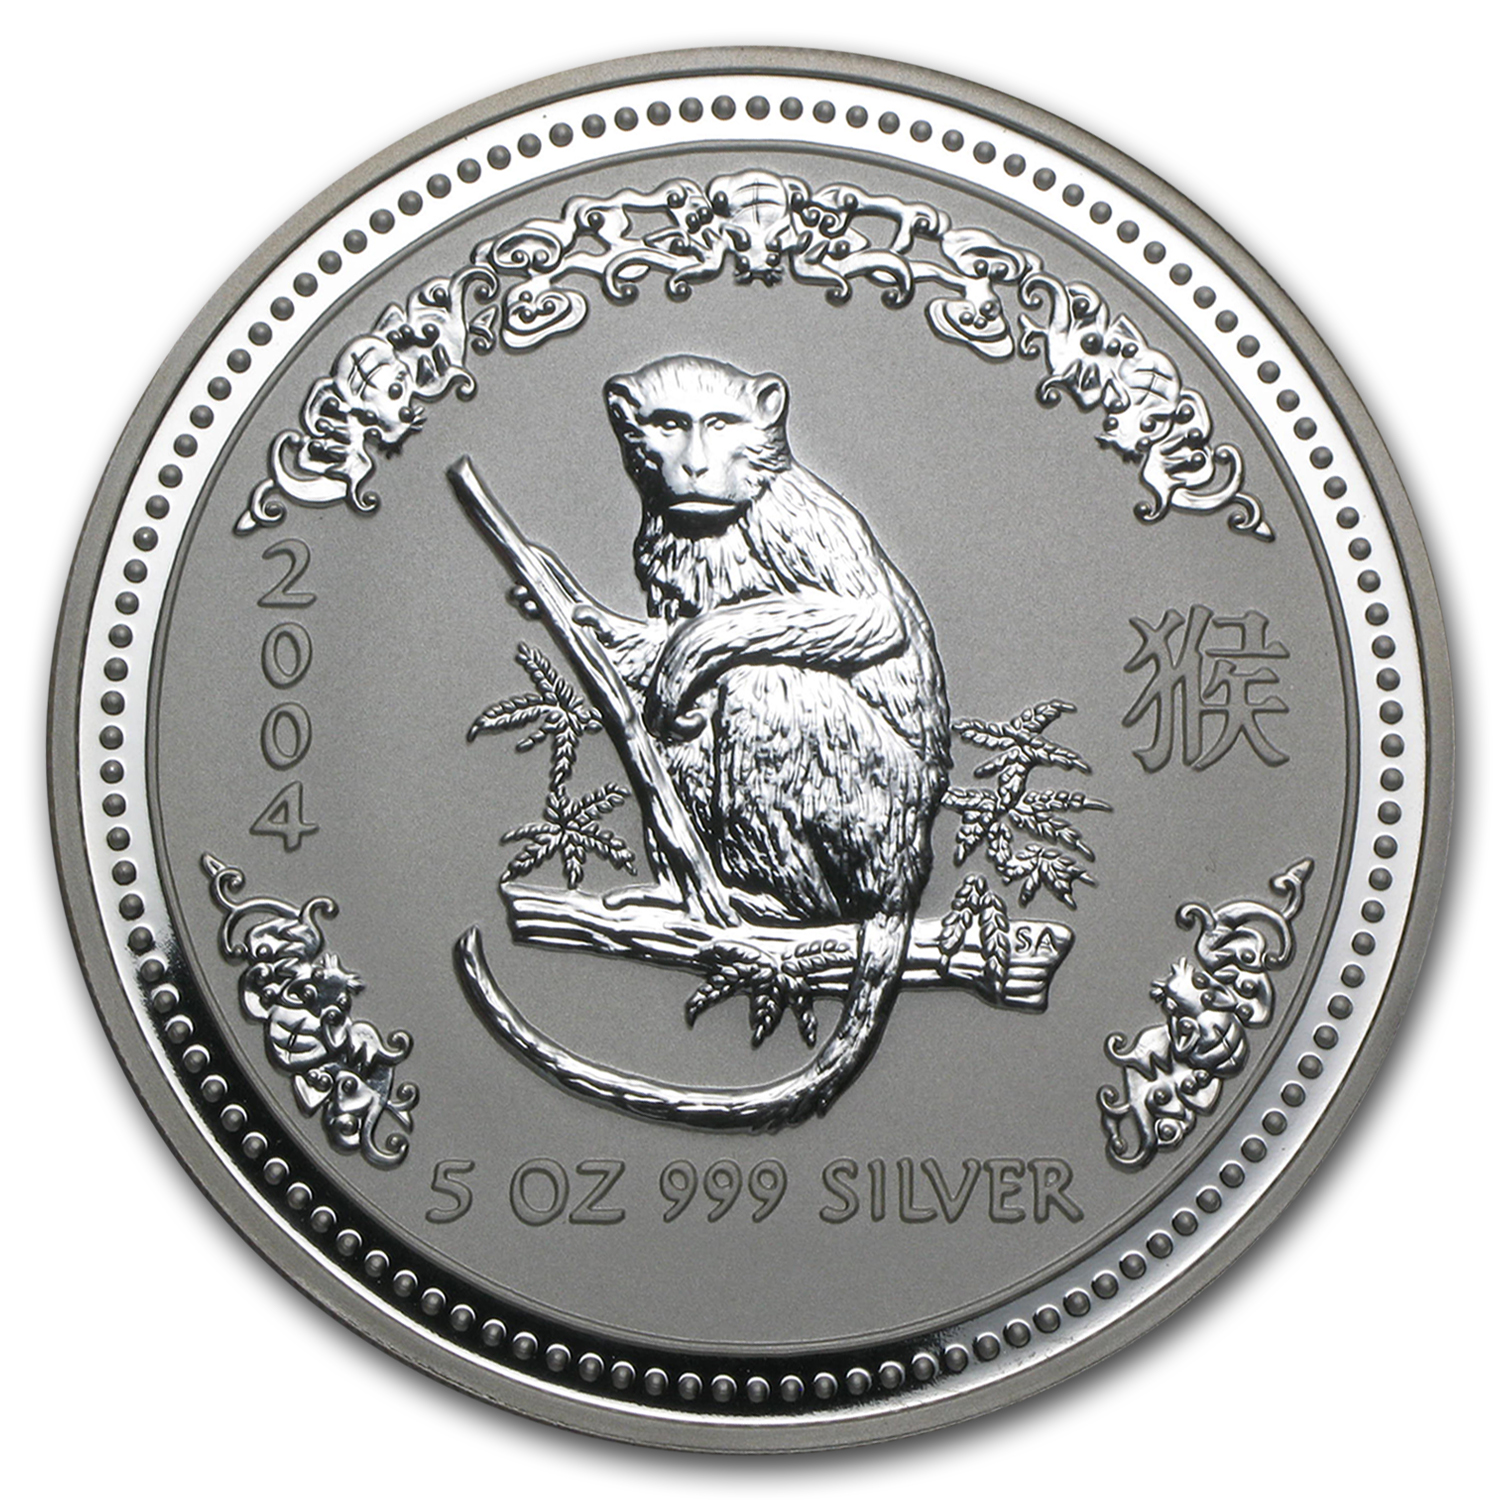 2004 5 oz Silver Lunar Year of the Monkey (Series I)